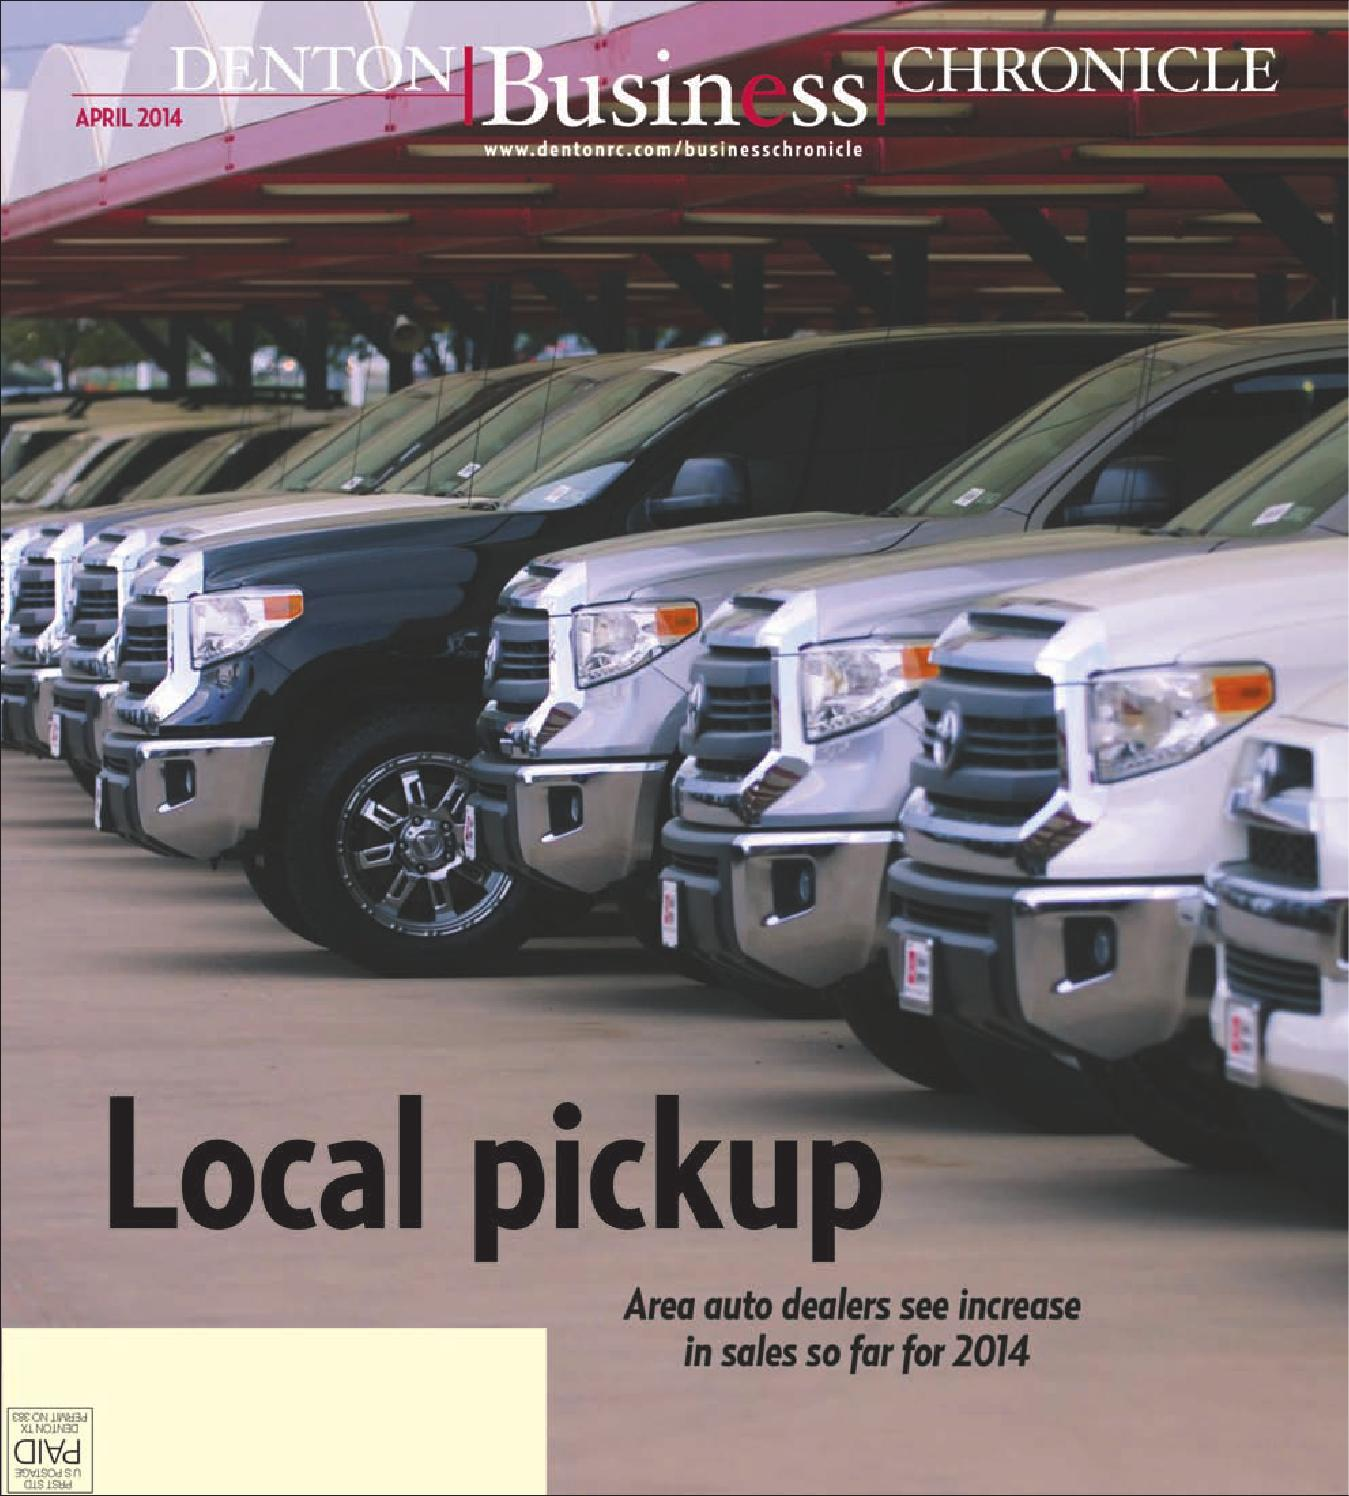 April Denton Business Chronicle 2014 by Larry McBride issuu